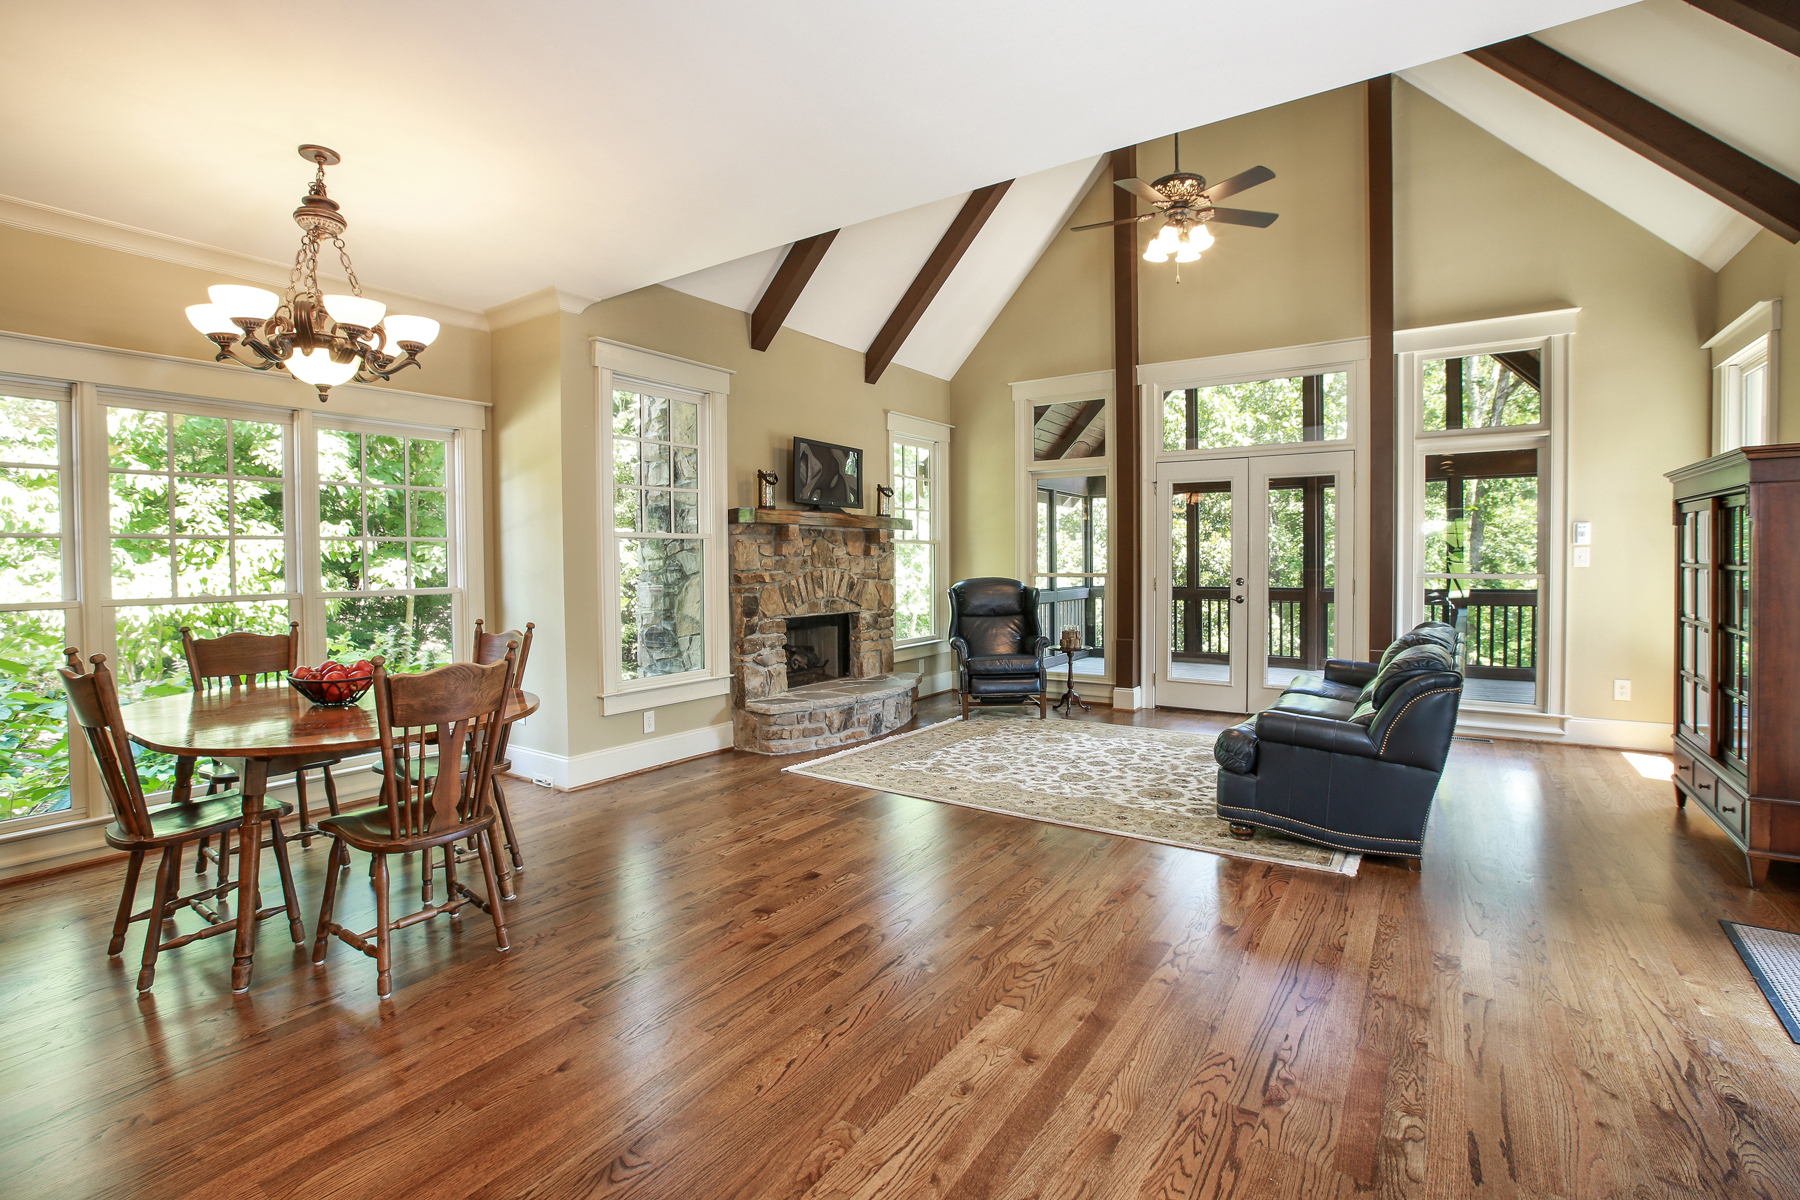 Additional photo for property listing at Comfortable Craftsman-Style Home On Private Wooded Lot 16066 Inverness Trail Milton, Georgia 30004 United States